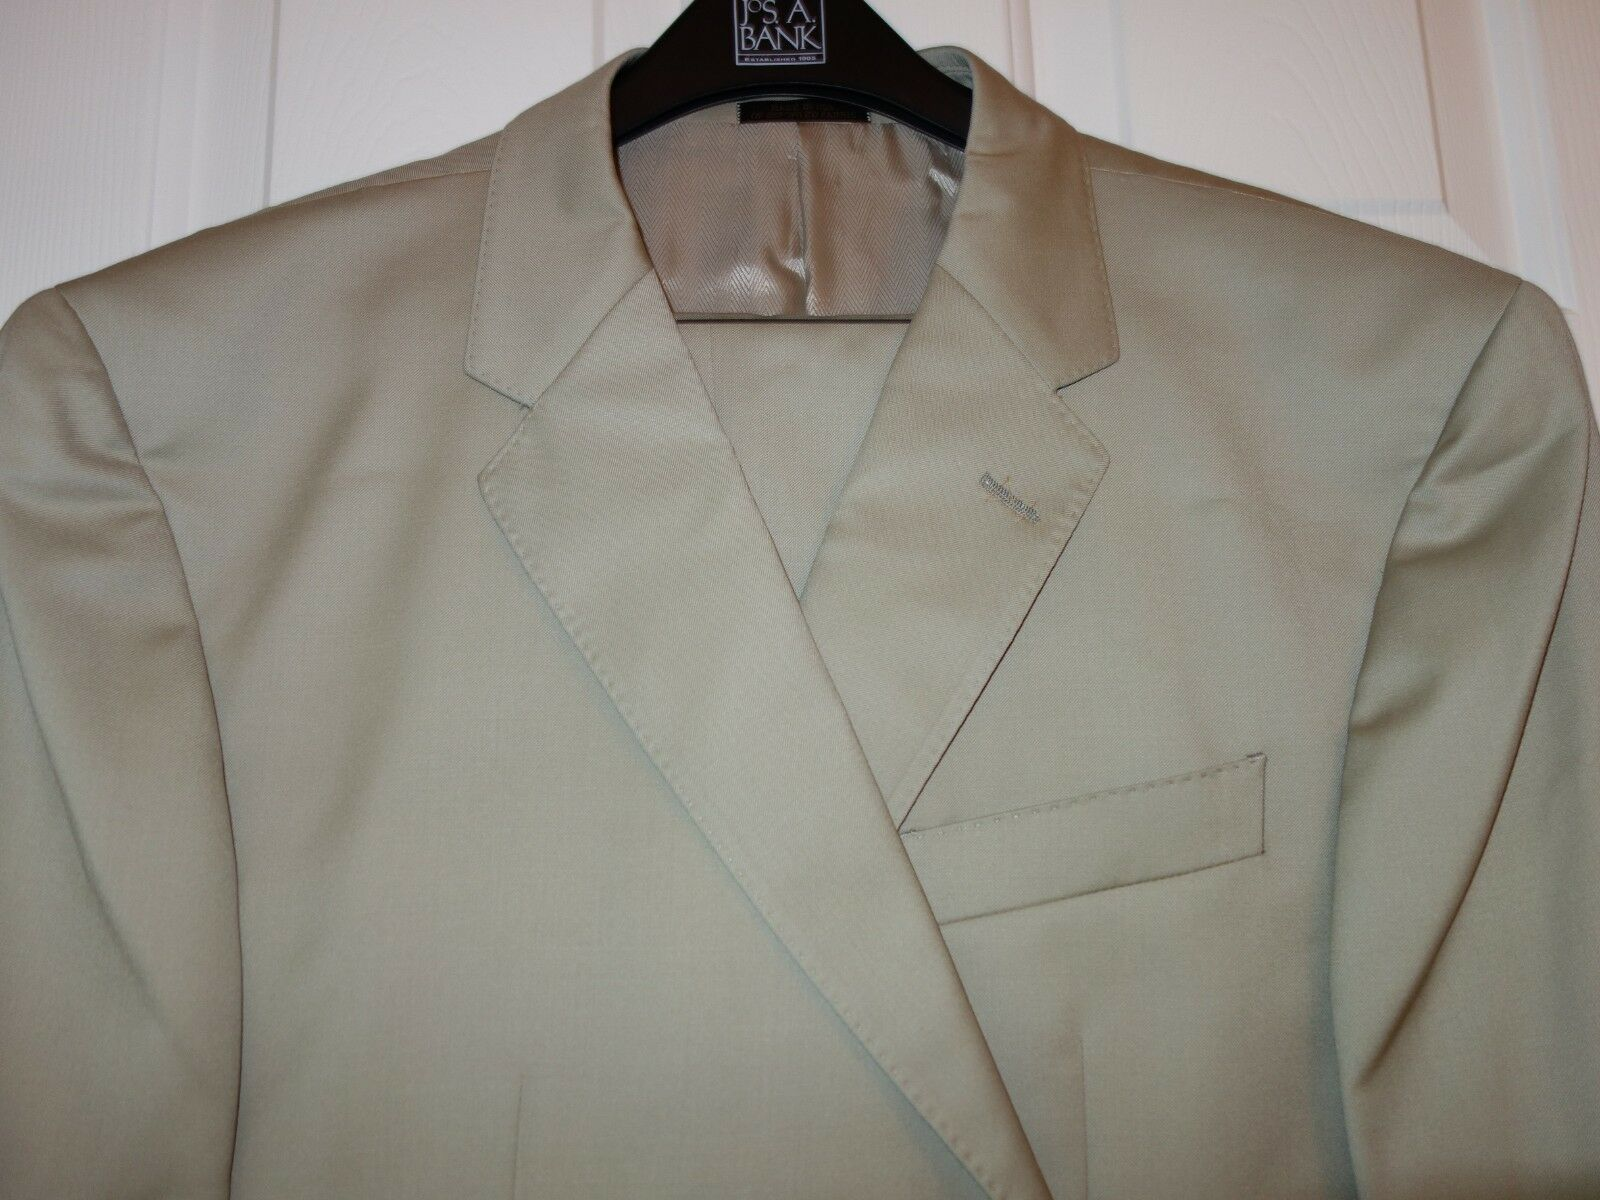 NEW Jos. A. Bank RESERVE WOOL Herren SUIT sz. 46 S W 40 MADE IN USA